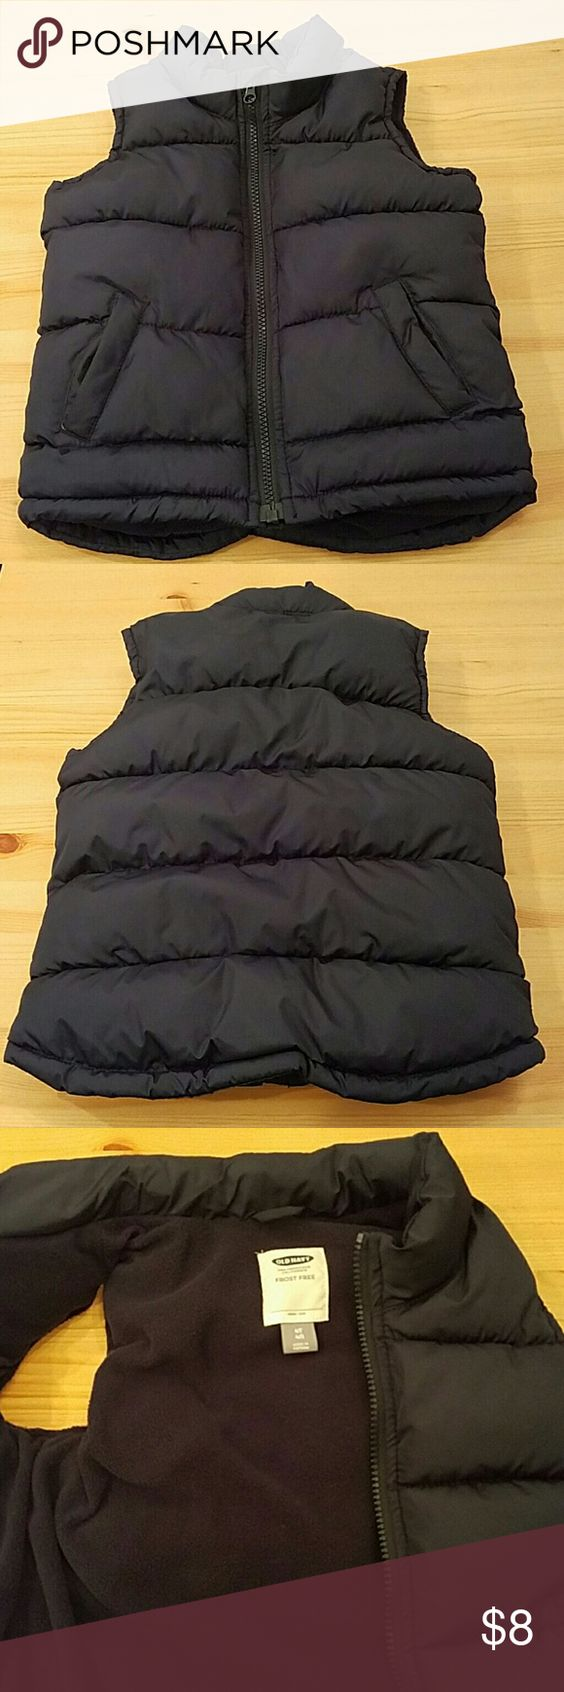 Old Navy Frost Free Boys Vest Navy Blue size 4T Old Navy Frost Free vest. Worn 2 times. Excellent condition. Polar fleece lining. Old Navy Jackets & Coats Vests